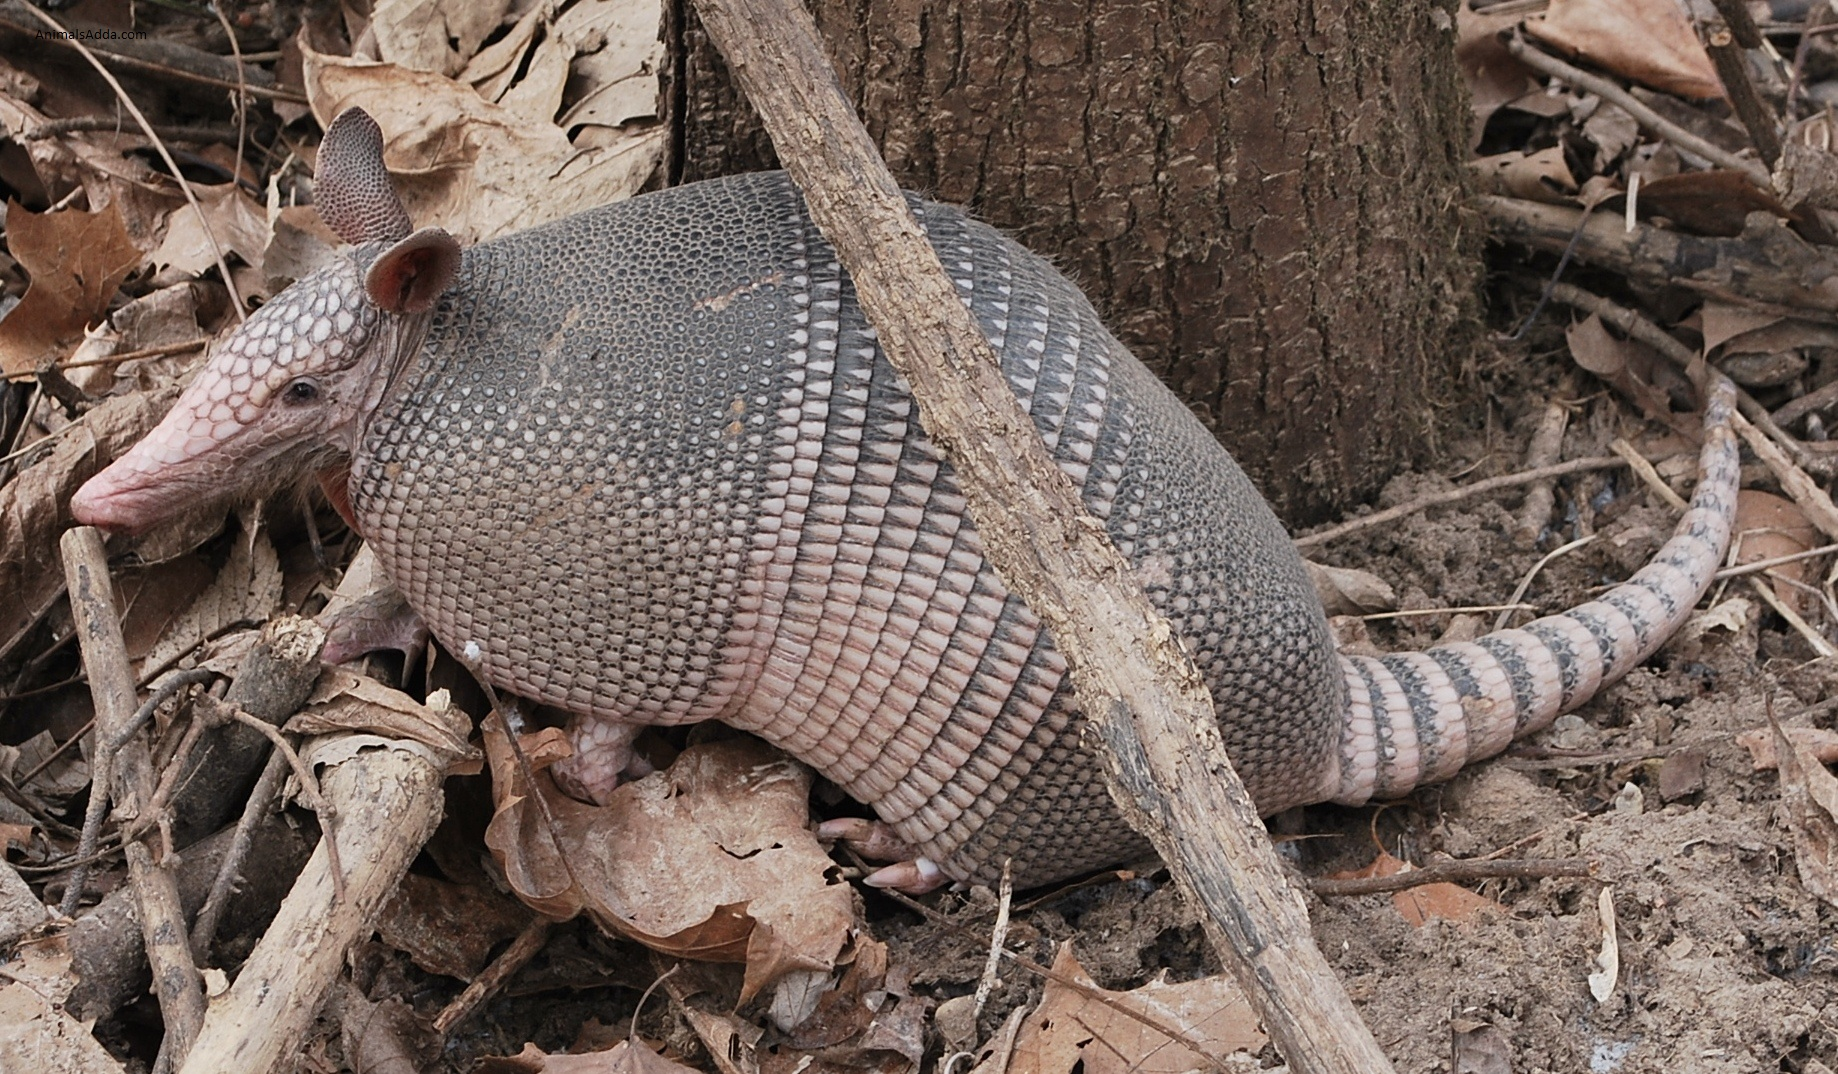 an overview of the armadillo in the animal kingdom